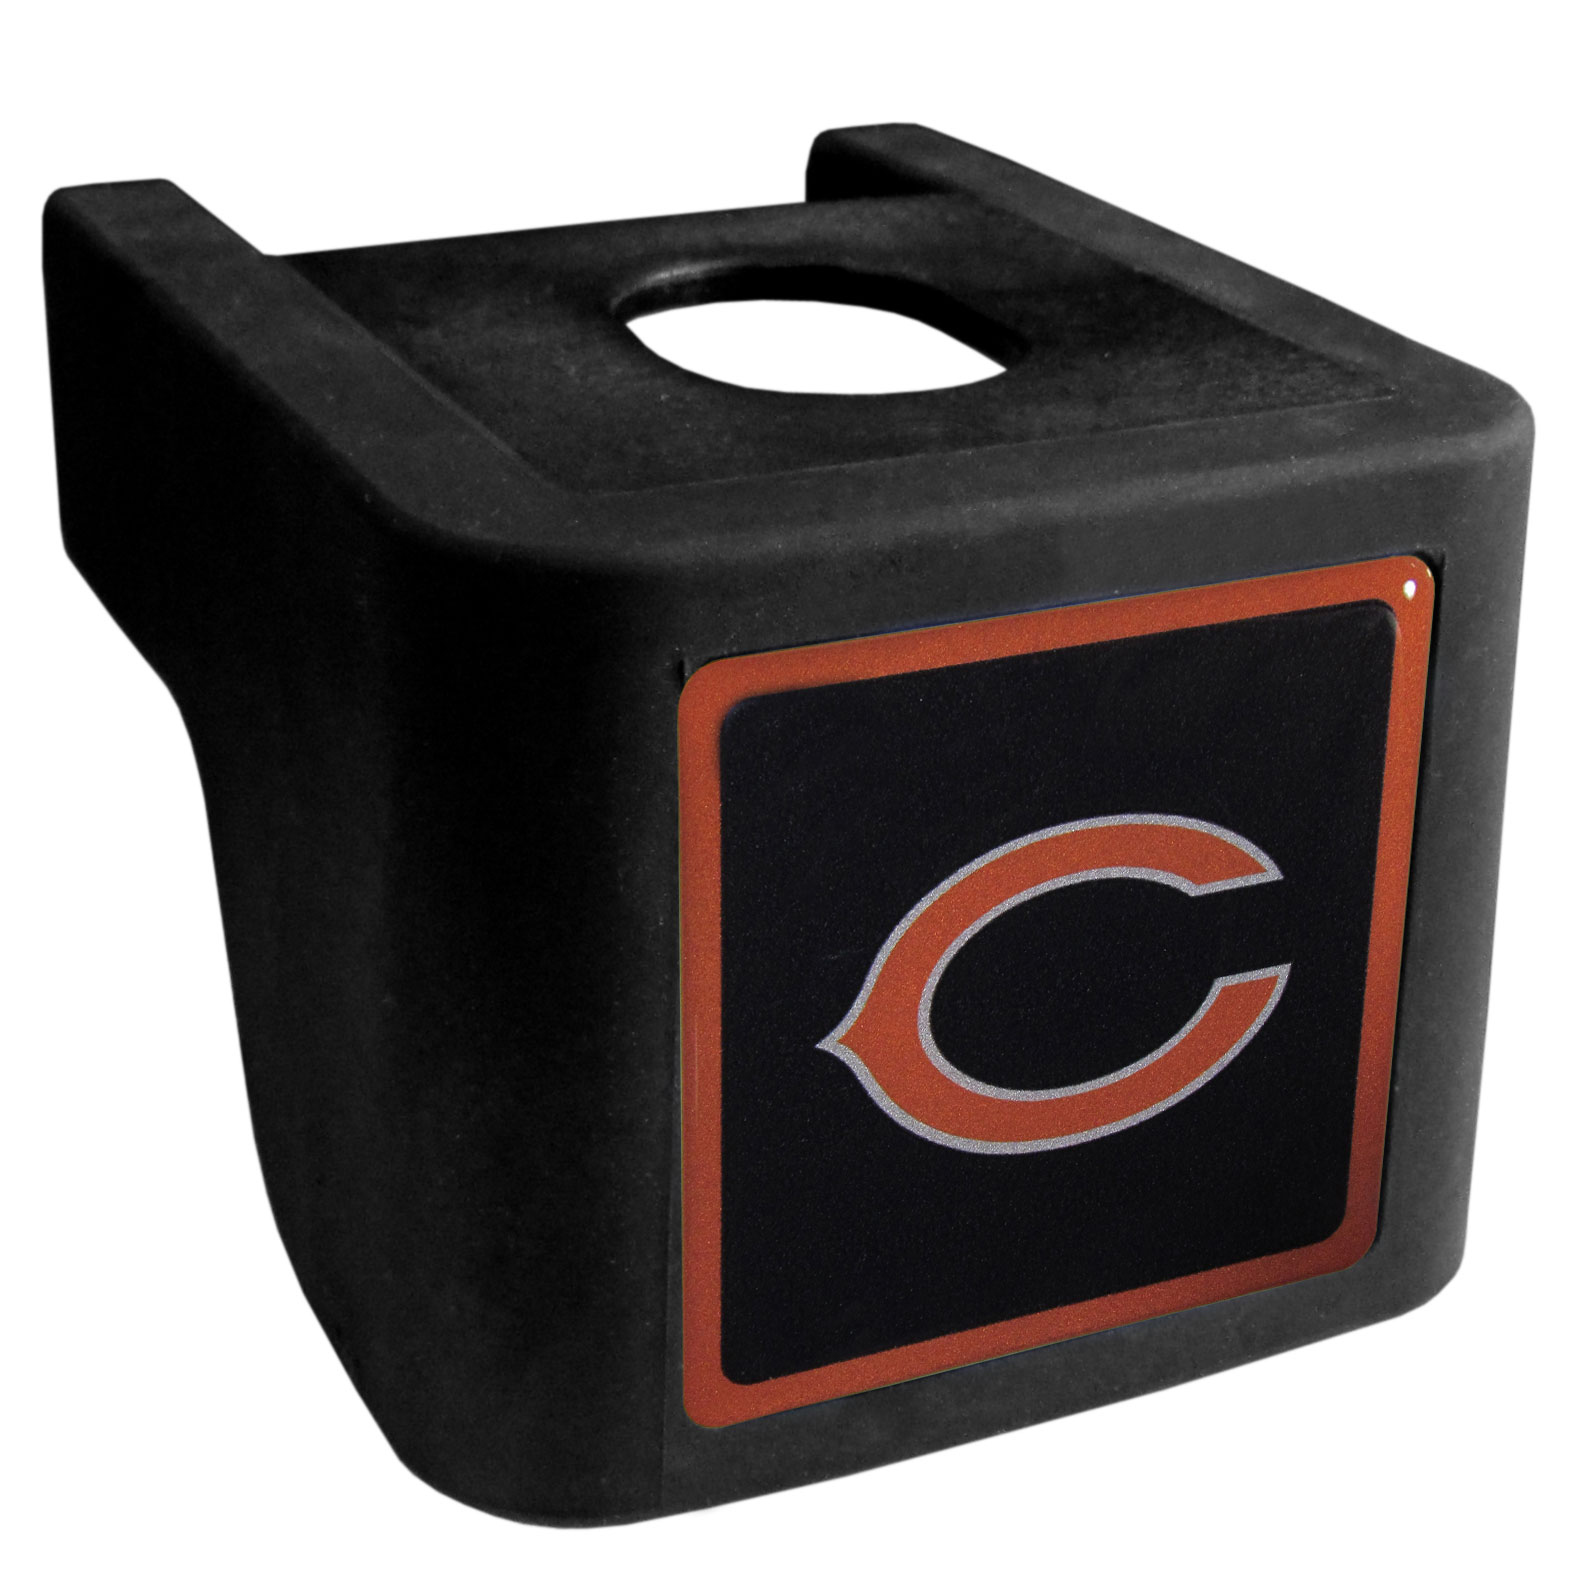 Chicago Bears Shin Shield Hitch Cover - This unique hitch cover features a large Chicago Bears logo. If you have ever hooked up a trailer or boat your have probably smashed your shins on the ball hitch a few times. This revolutionary shin shield hitch cover provides your much abused shins with the protection they deserve! The tough rubber hitch is rated to work with Class V hitch receivers hauling up to 17,000 gross trailer weight and 1,700 tongue weight allowing you to leave it on while hauling.